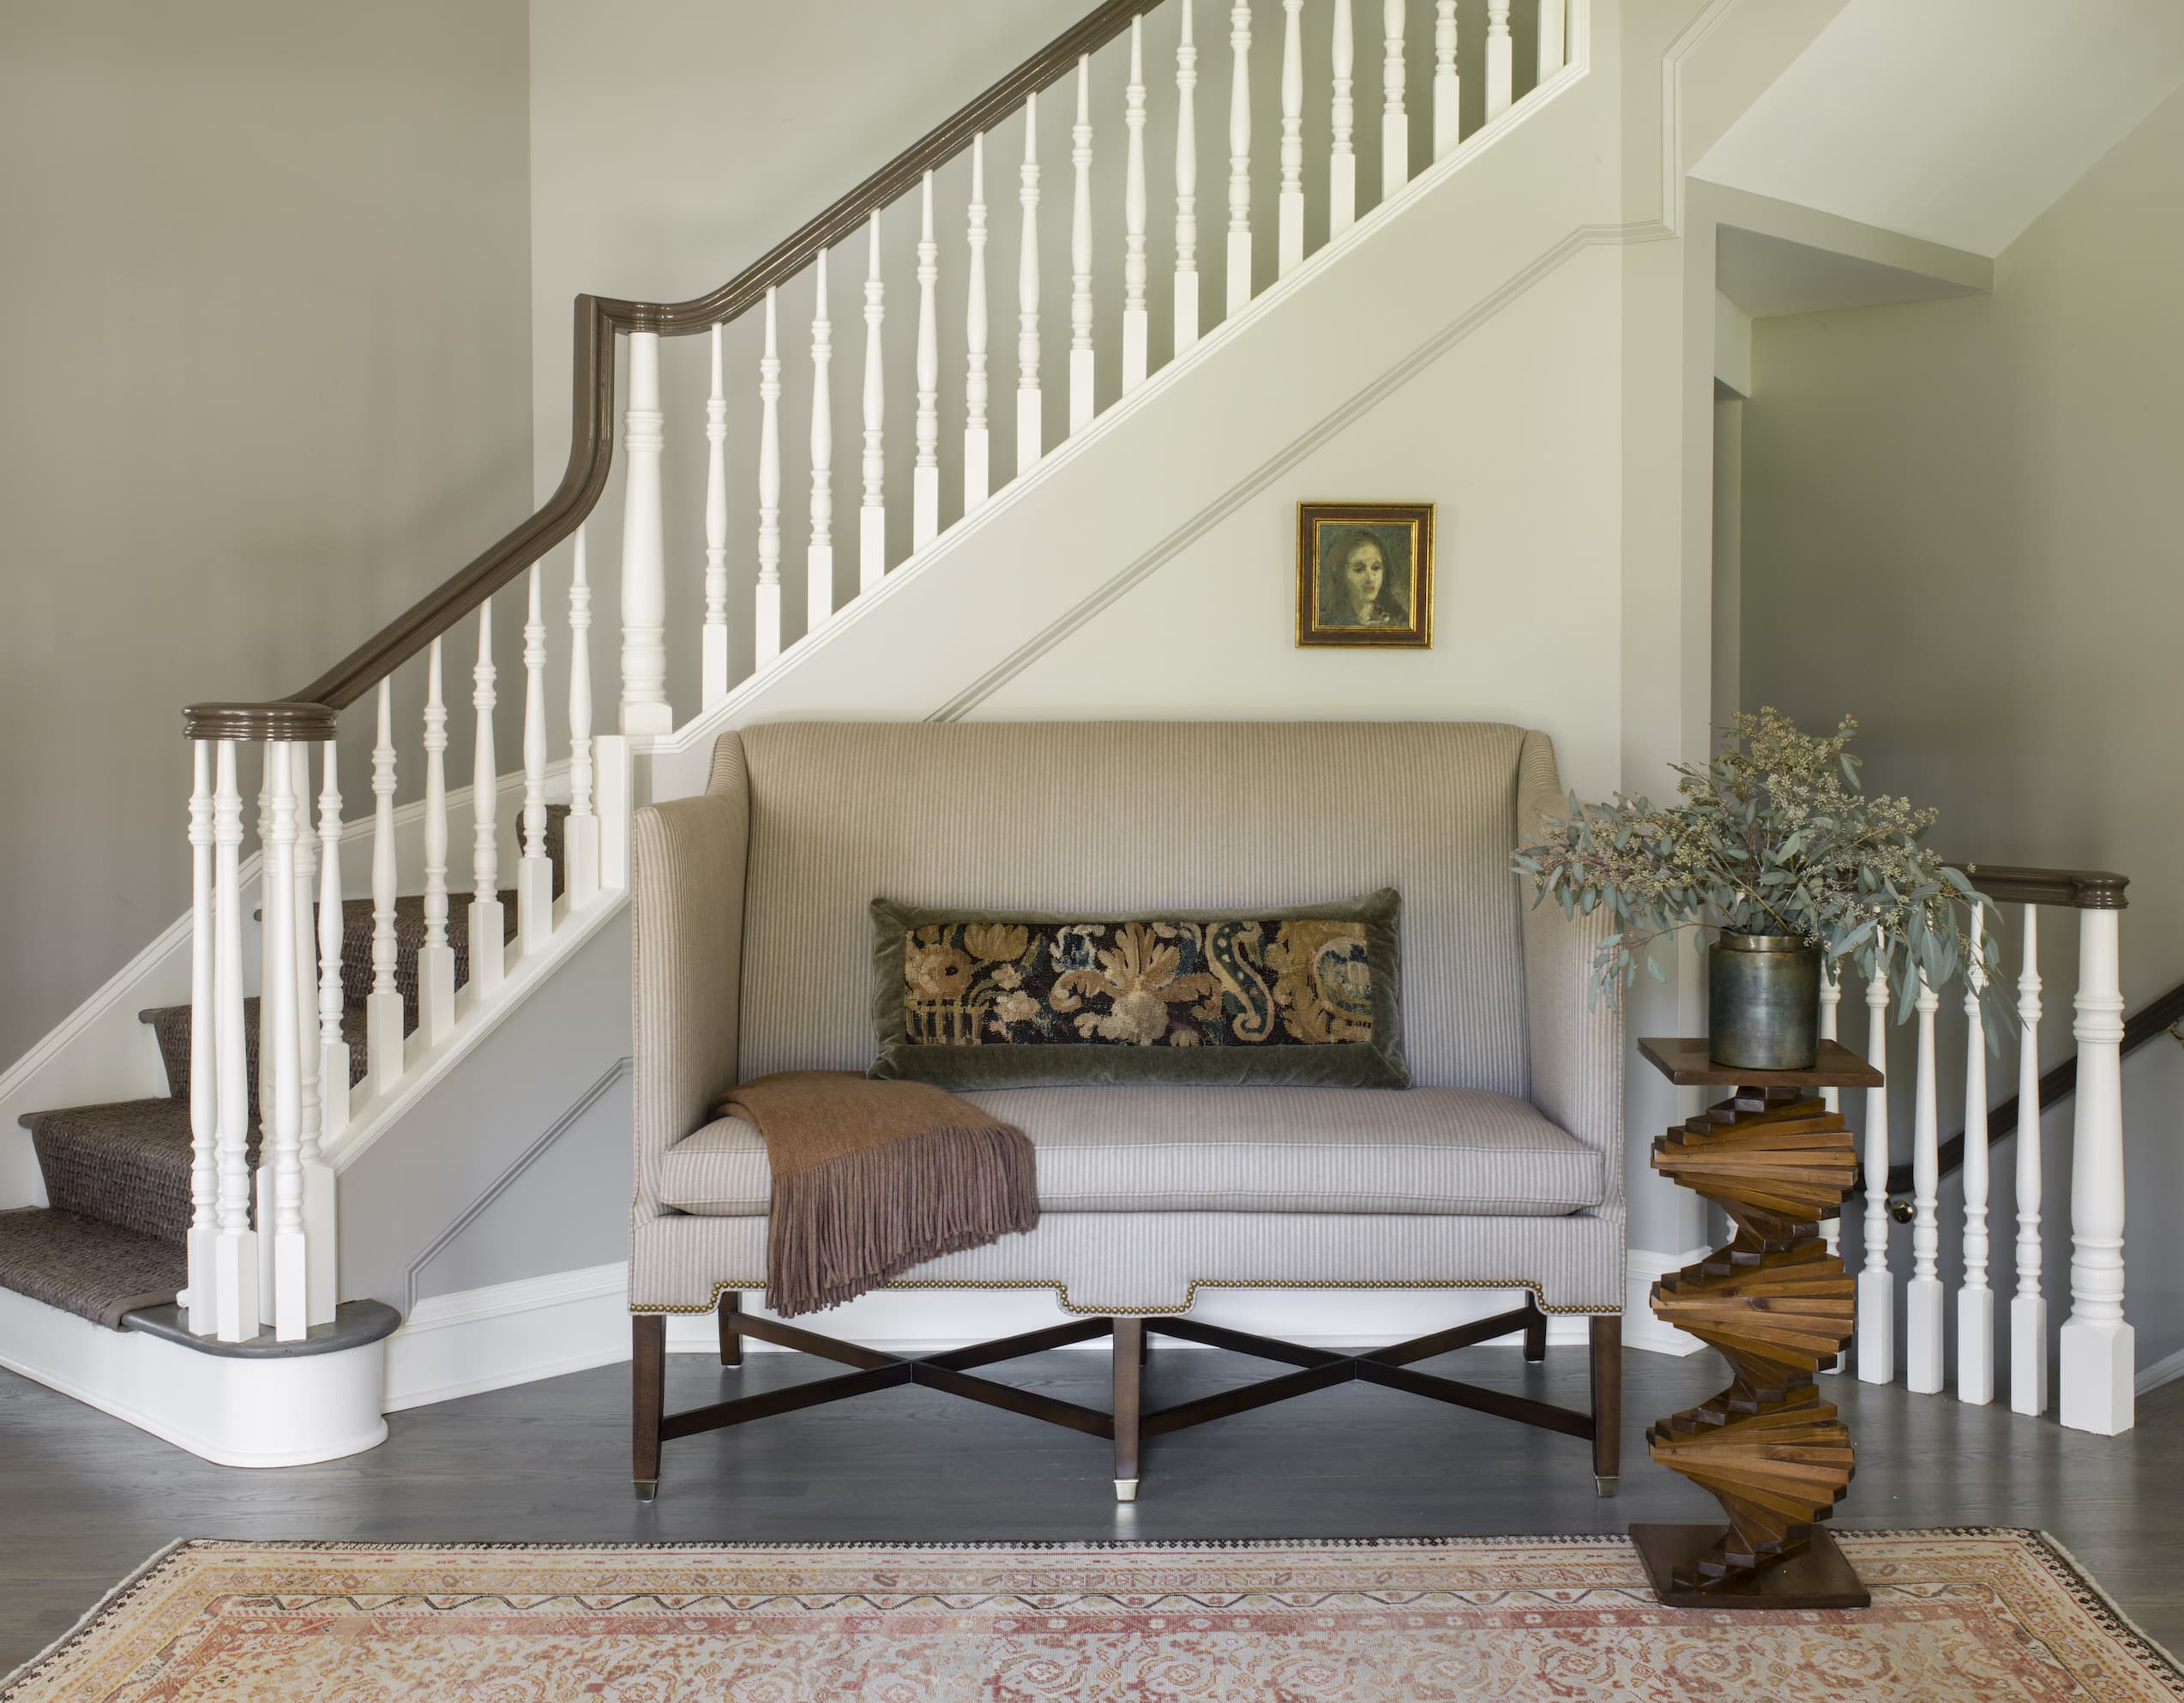 Sofa and table in front of a white staircase.